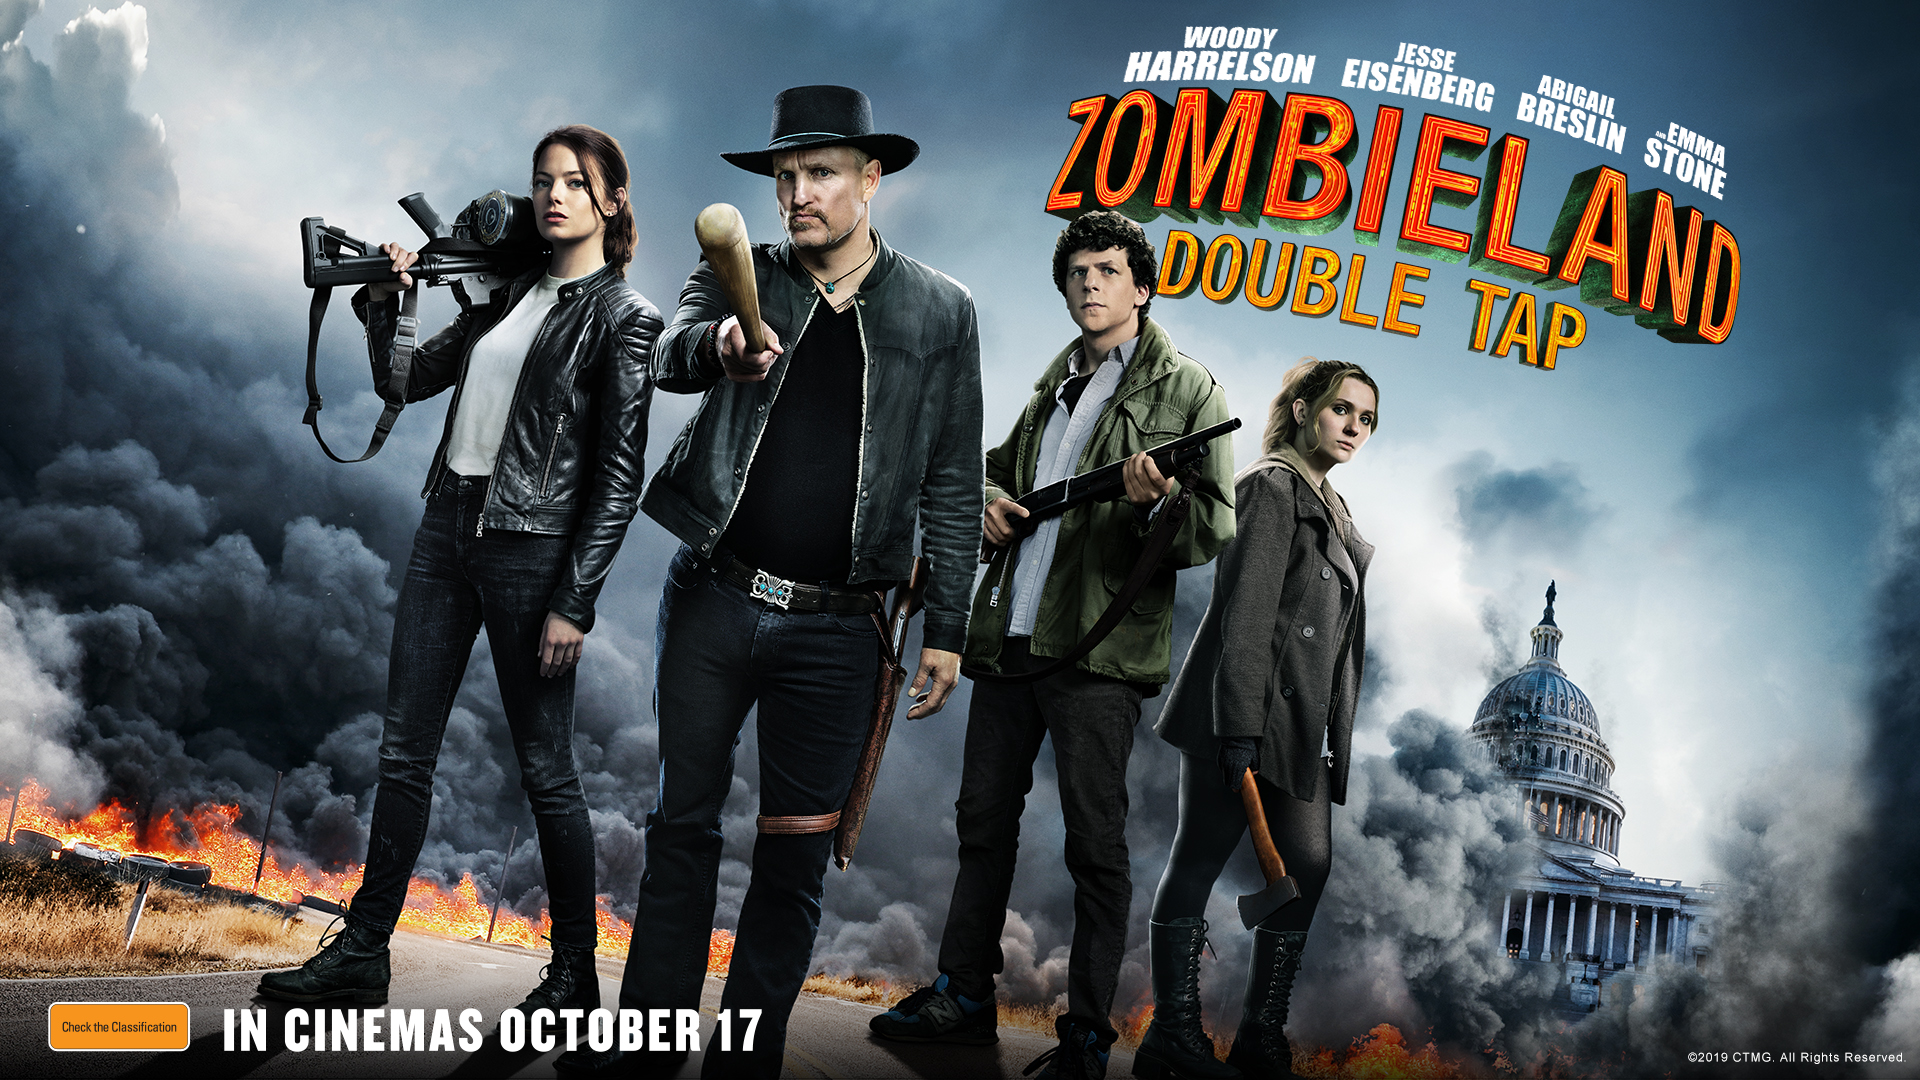 Be Among The First To See Zombieland: Double Tap At Exclusive Preview Screenings!